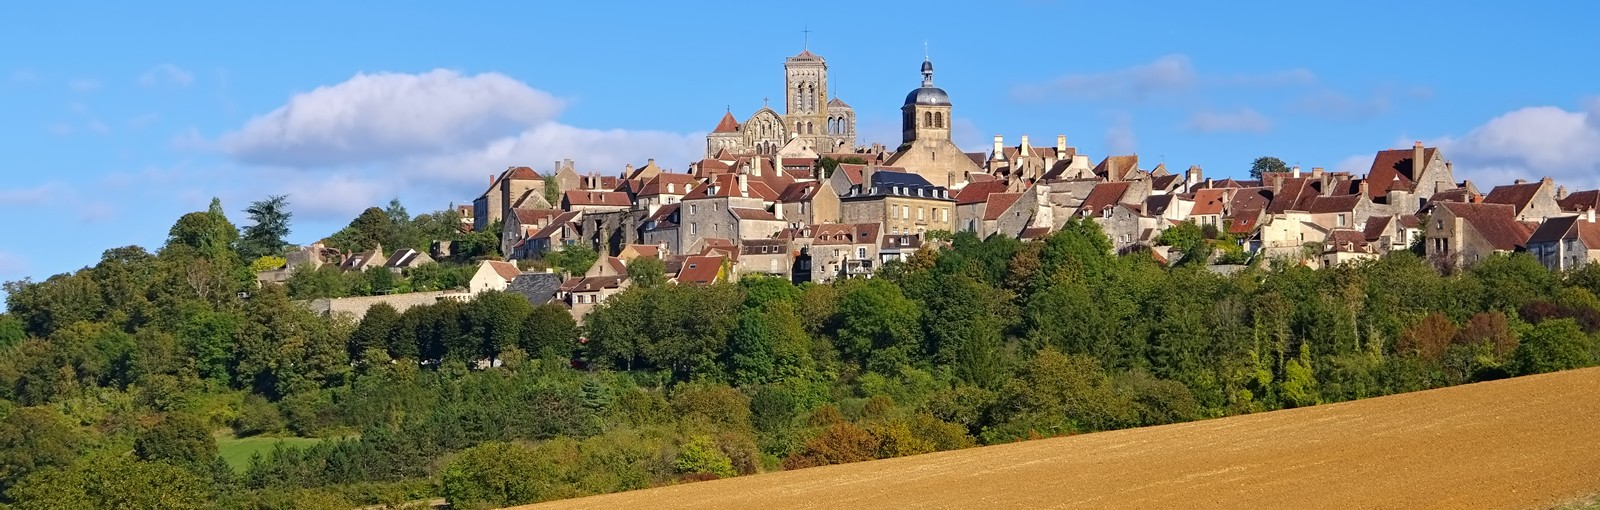 Tours 2 days in Burgundy: Chablis, Beaune, and the 'Grands Crus' wine route' - Burgundy - Day tours from Paris